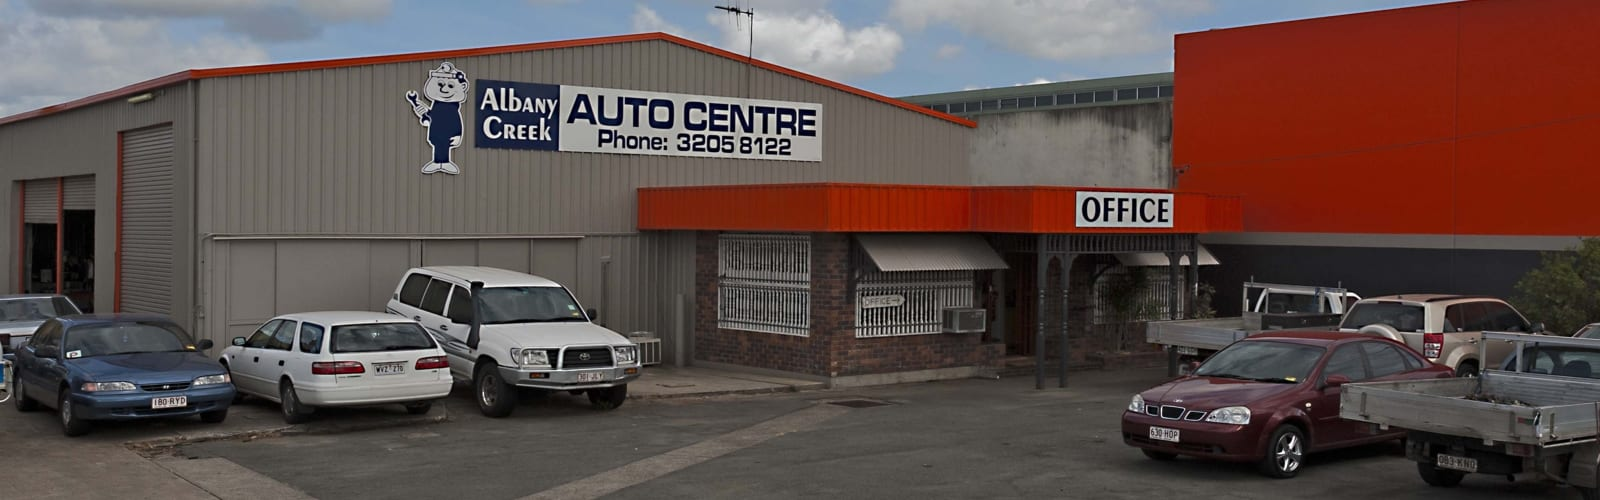 Very high resolution slider image showing Albany Creek Auto Centre's garage in Brendale, Queensland